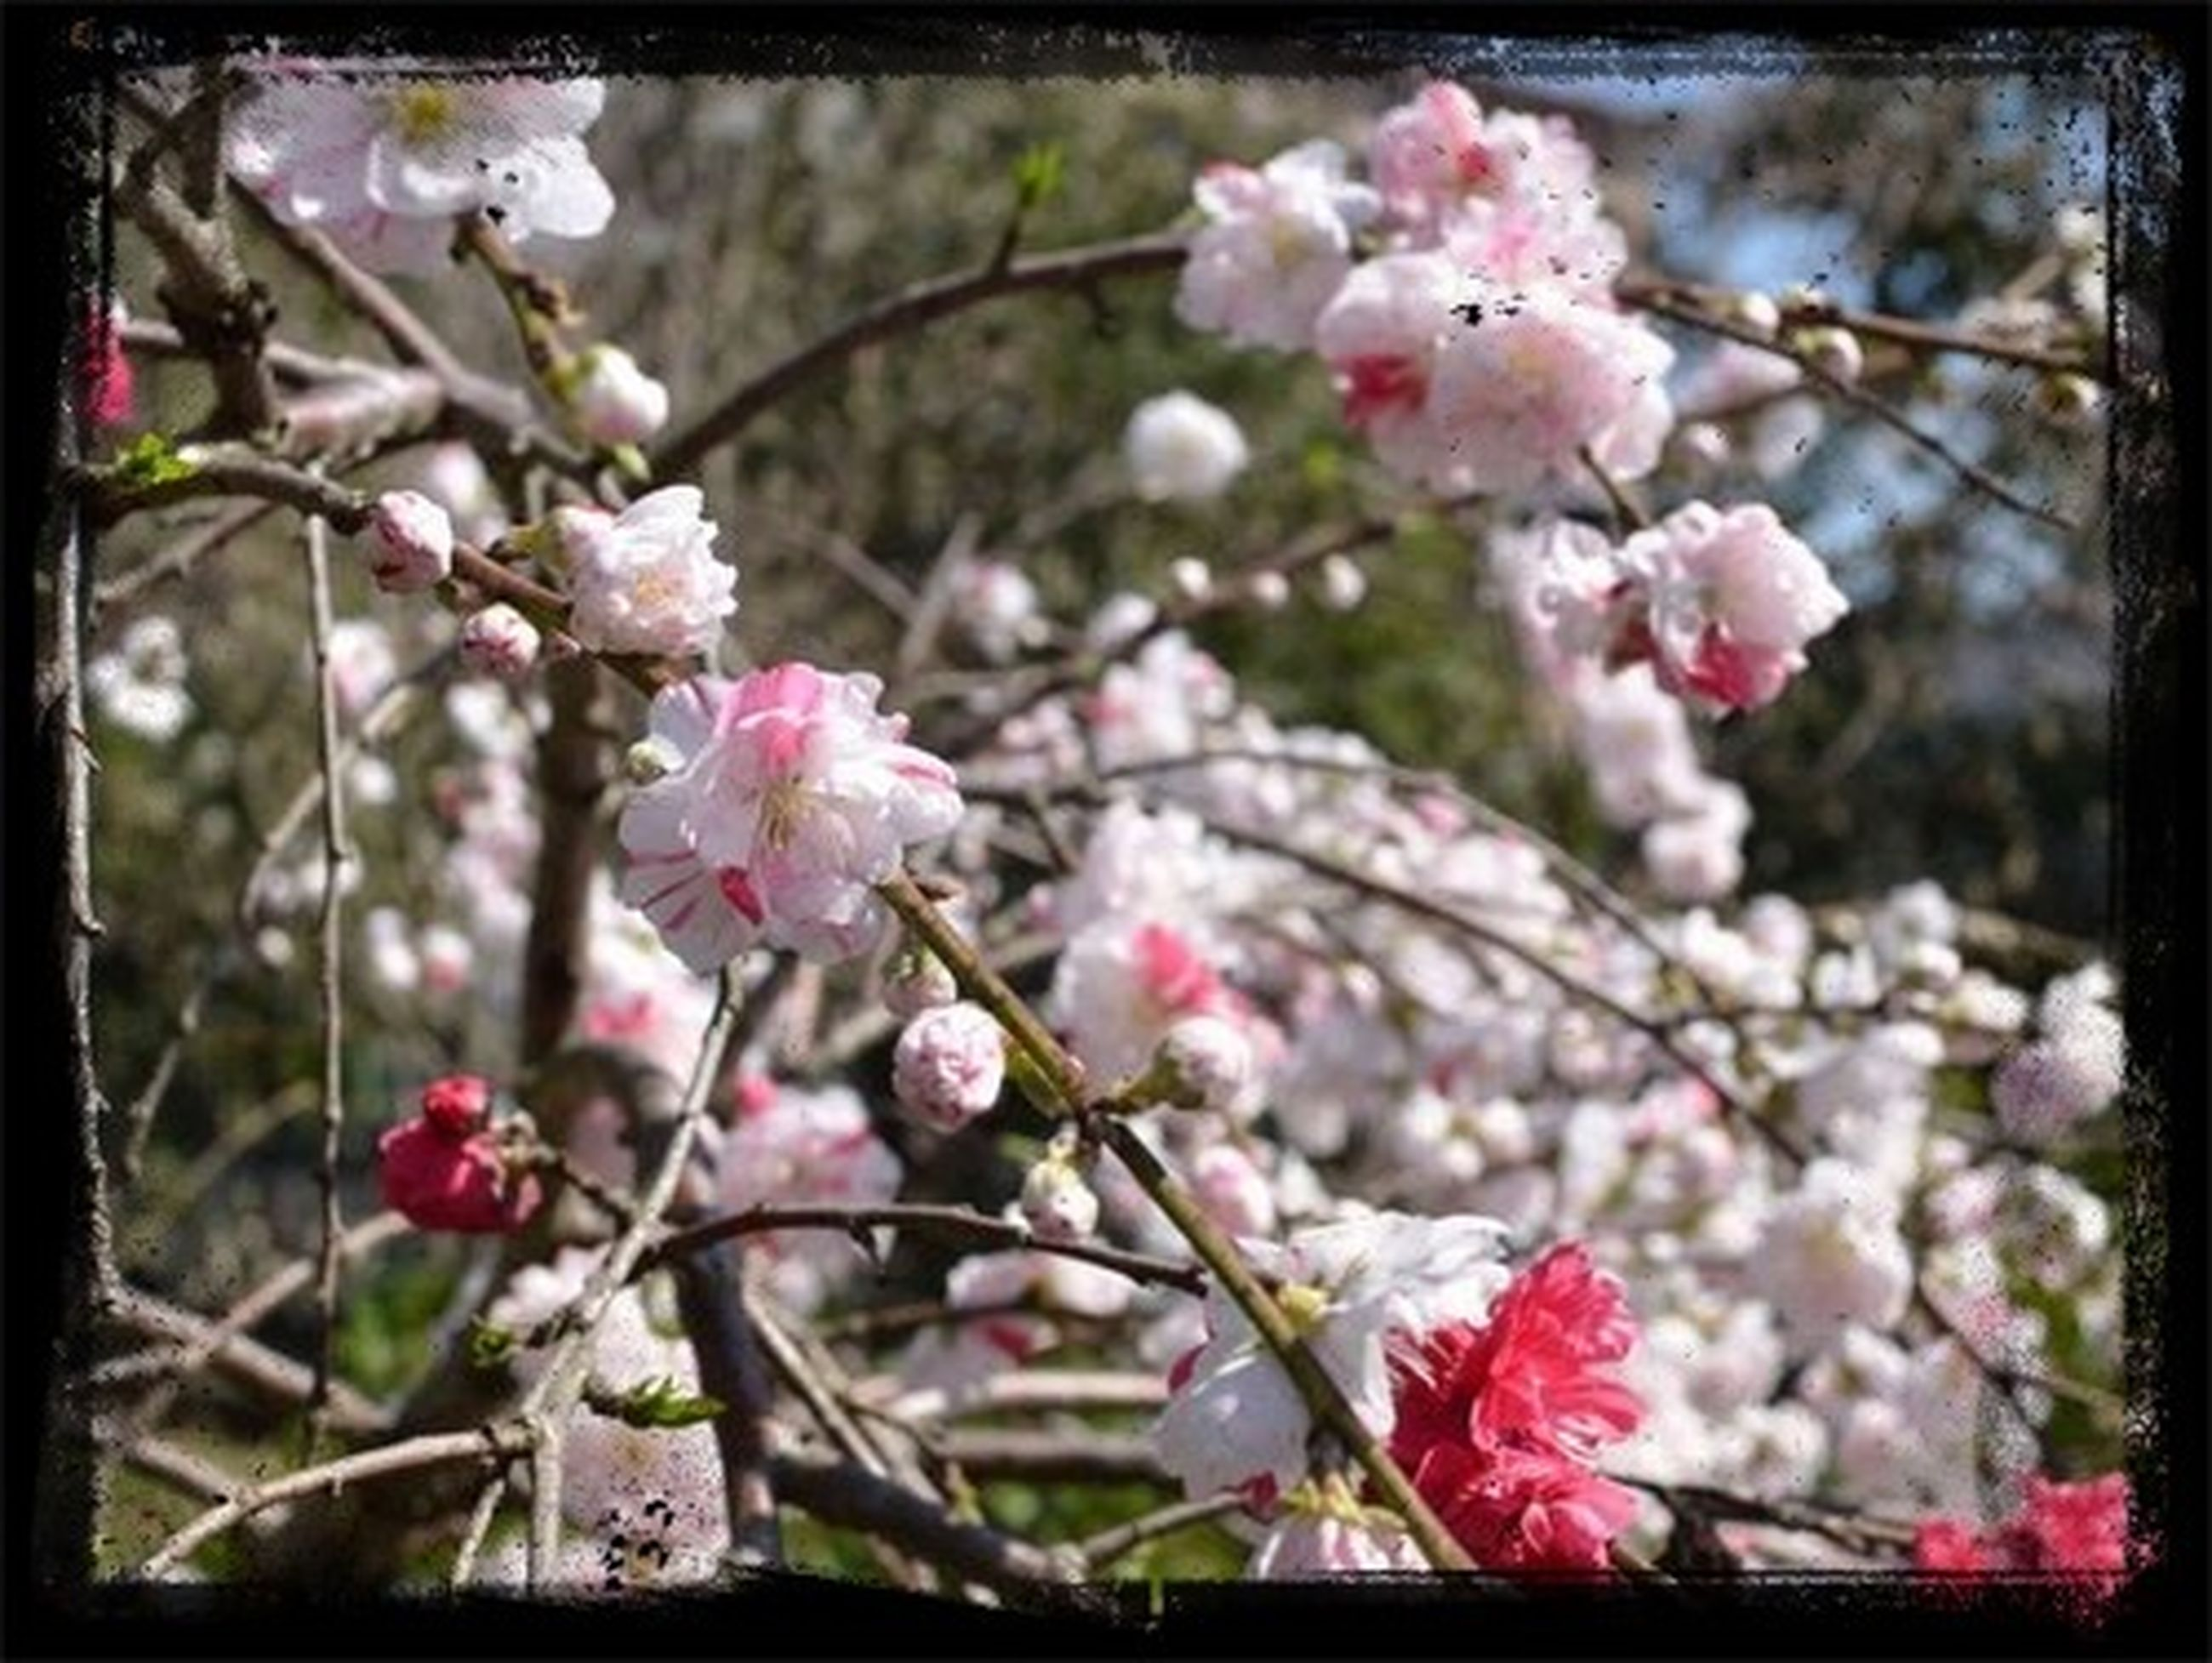 flower, freshness, fragility, growth, branch, pink color, beauty in nature, petal, nature, focus on foreground, blossom, transfer print, tree, blooming, close-up, twig, in bloom, auto post production filter, cherry blossom, cherry tree